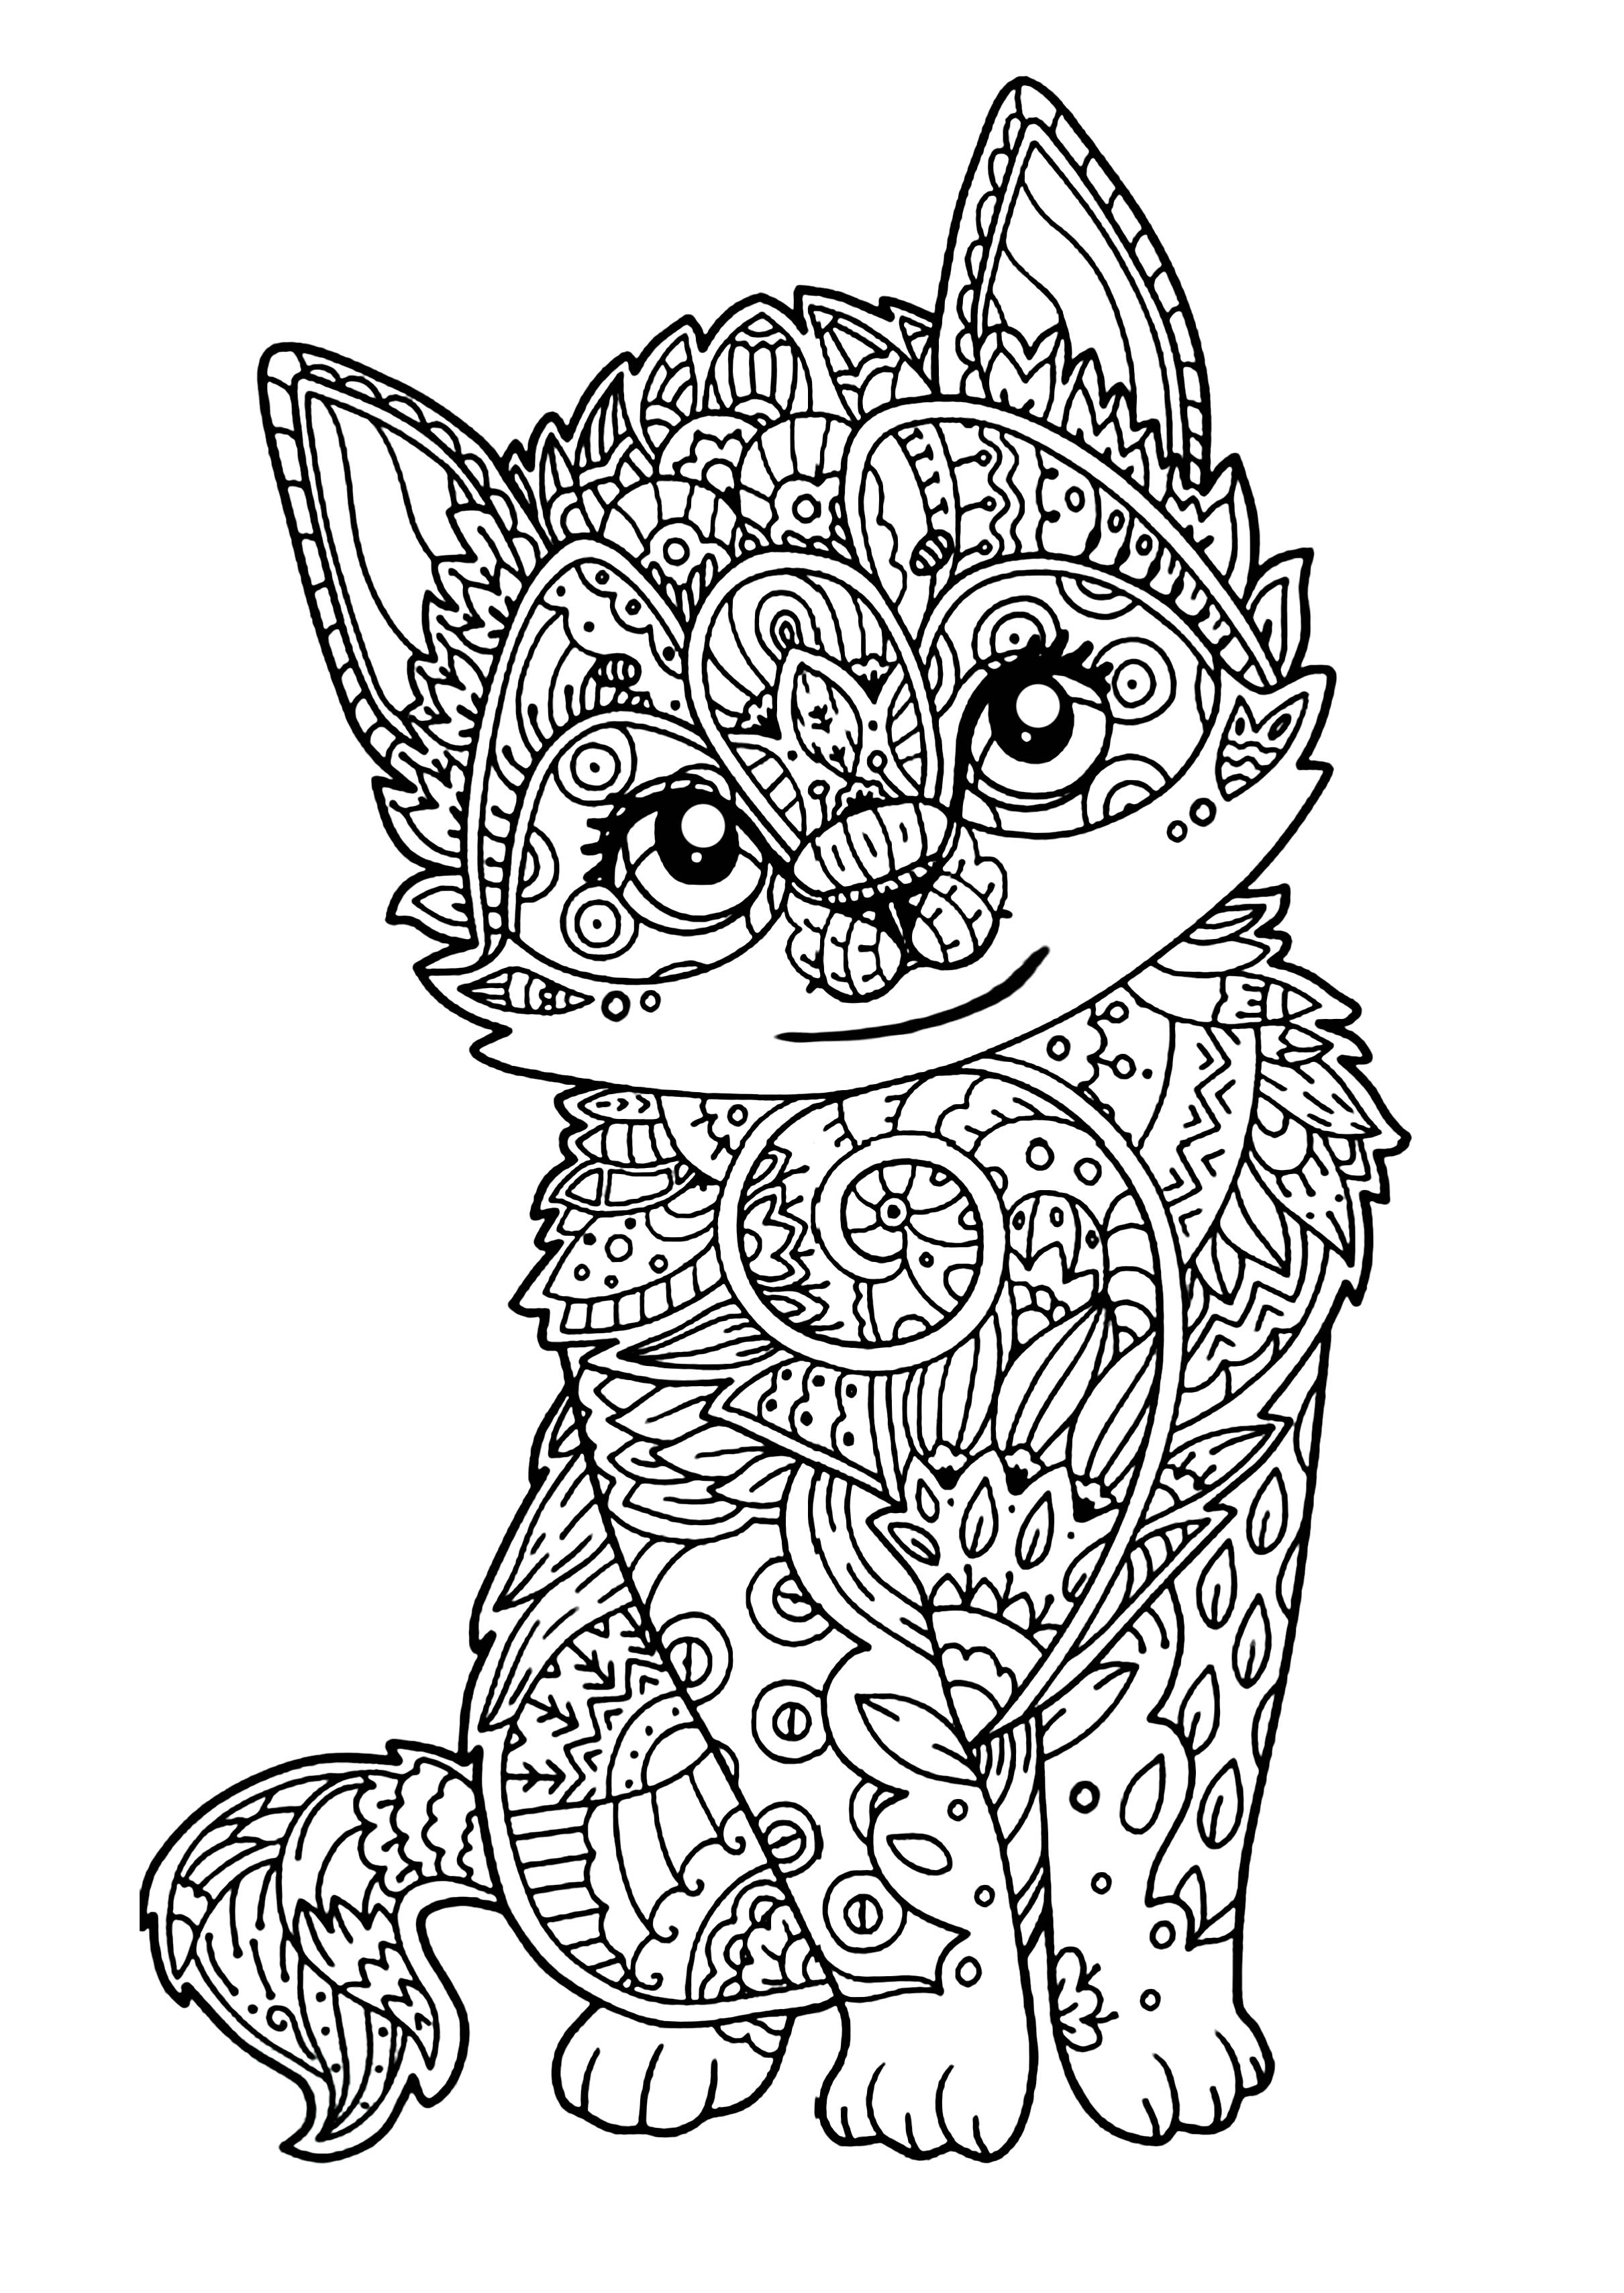 kitten coloring kitten coloring pages coloring pages to download and print coloring kitten